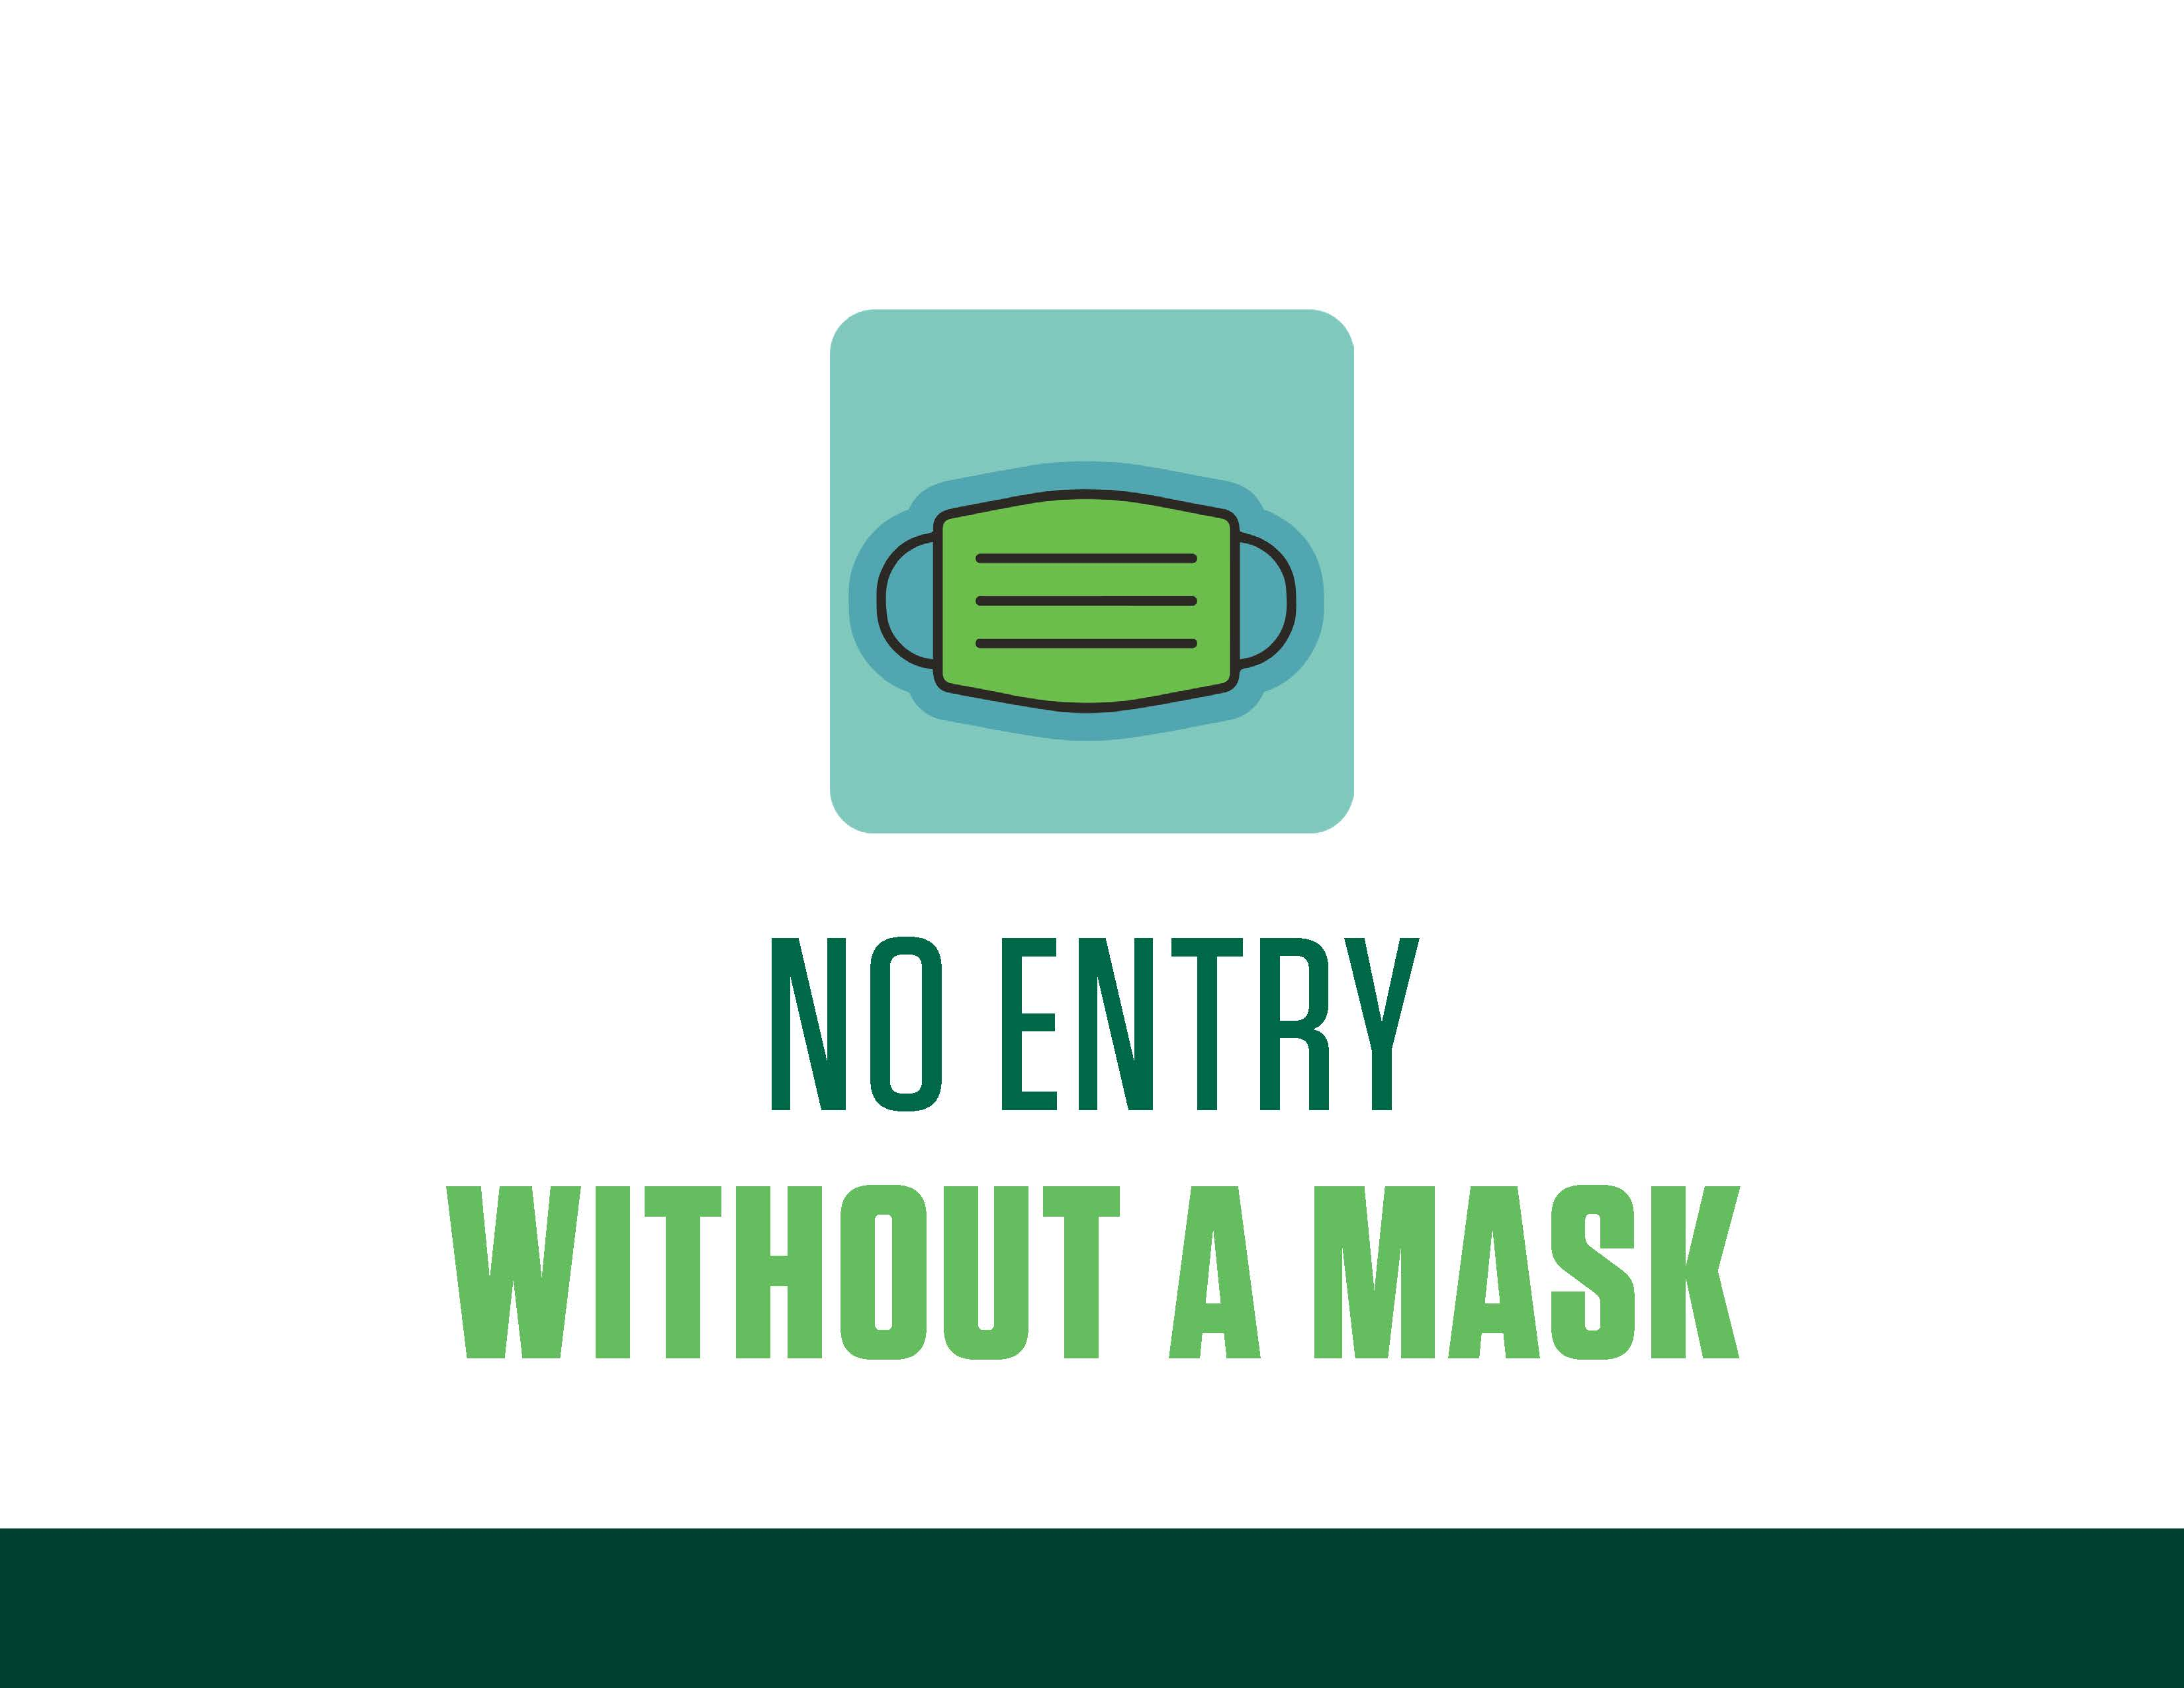 COVID sign - no entry without mask